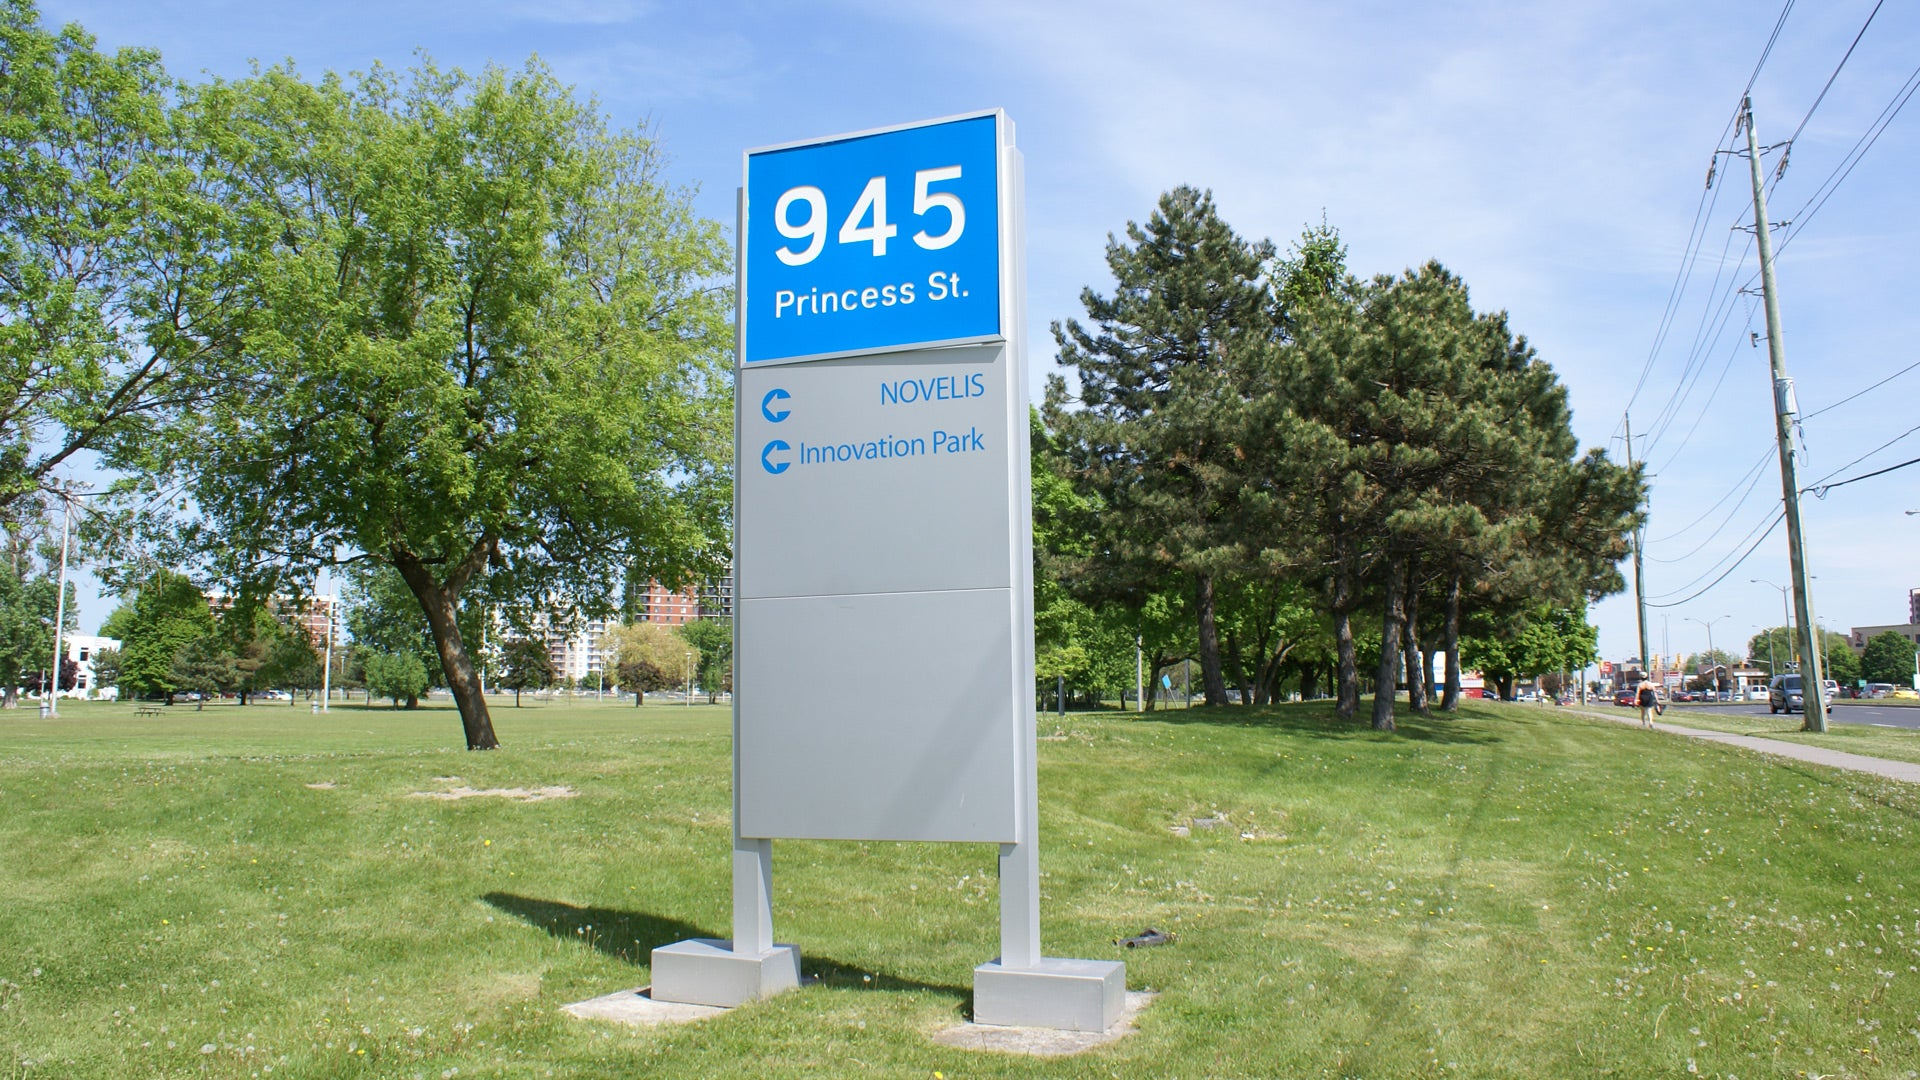 innovation park sign